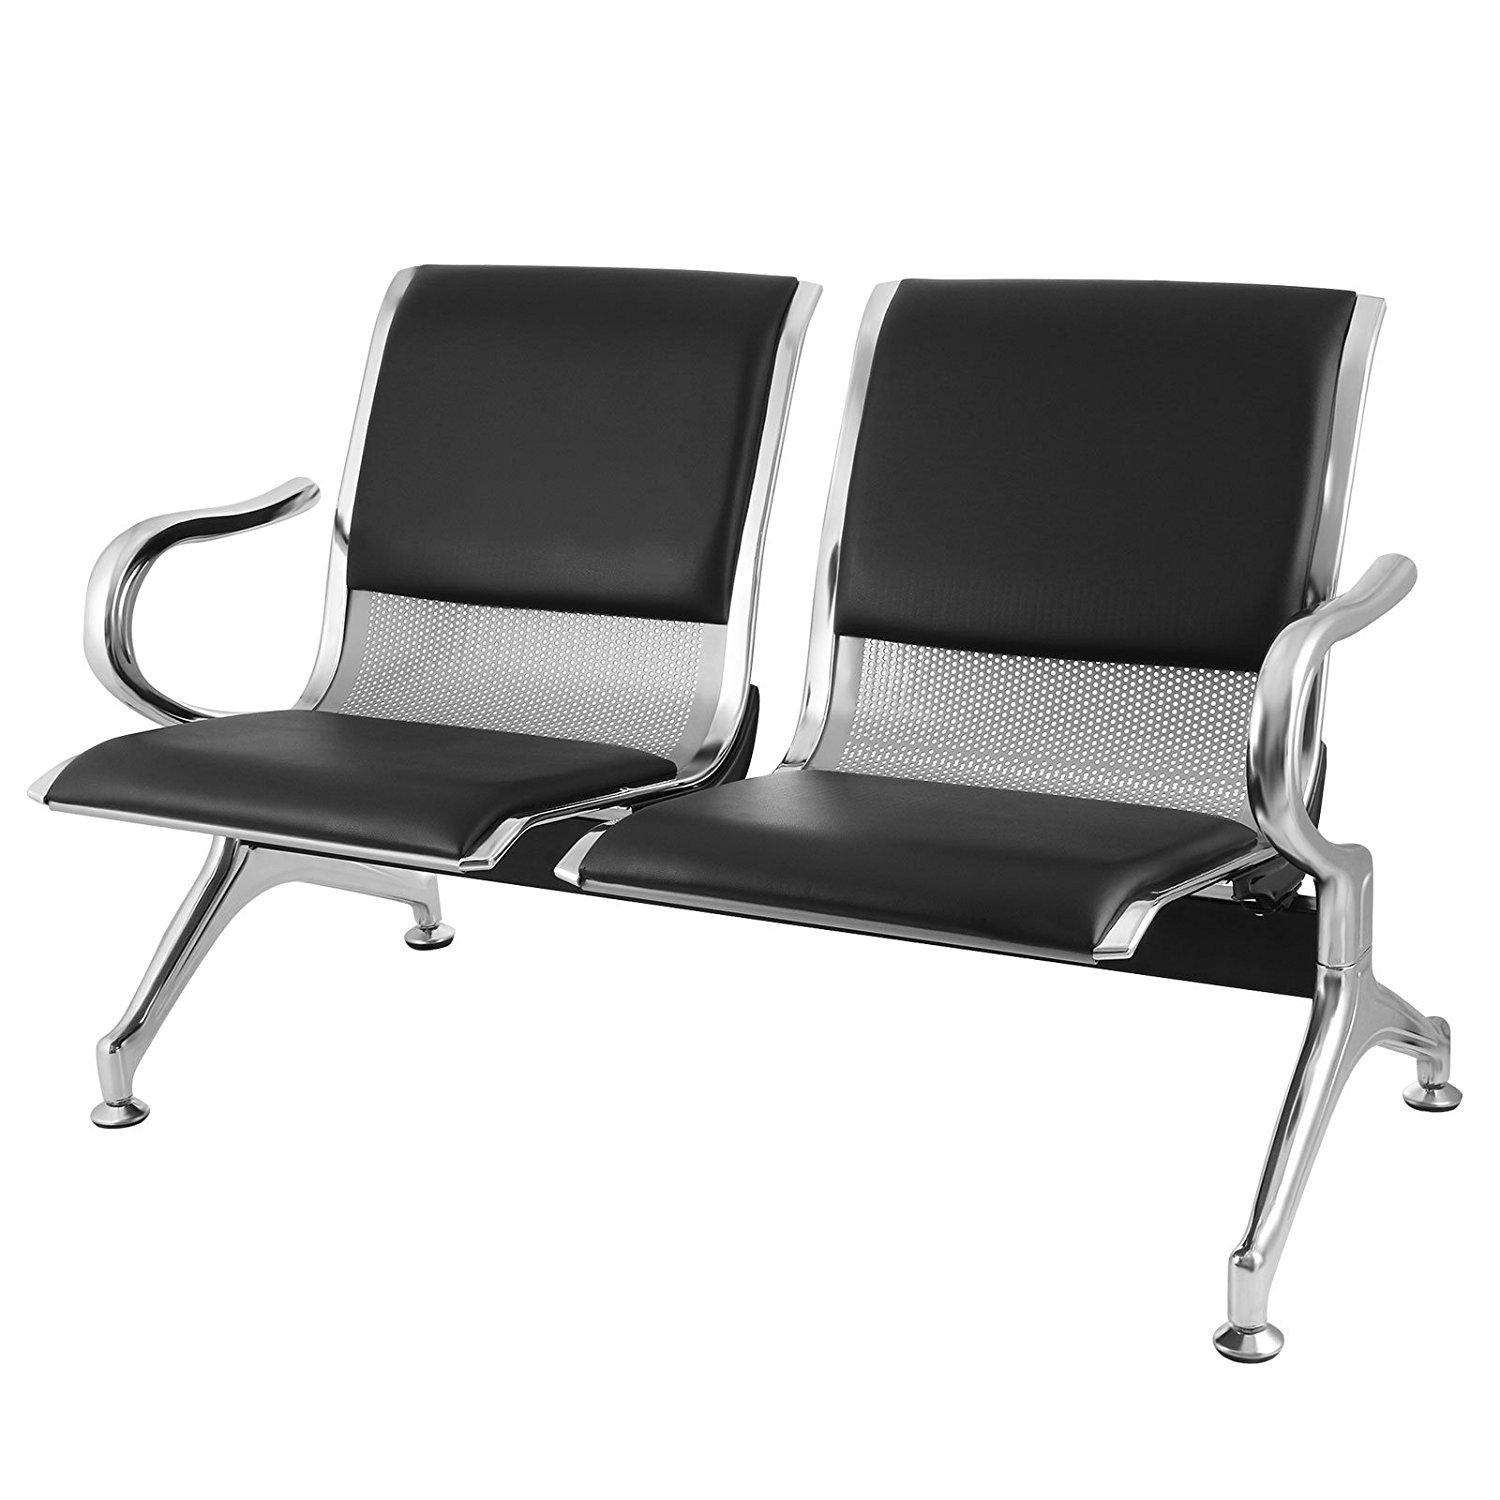 Mophorn Waiting Room Bench Chair 2 Seat Beach Airport Reception Chair Garden Barber Airport Salon Waiting Chairs Stainless Steel PU Leather (2-Seat)